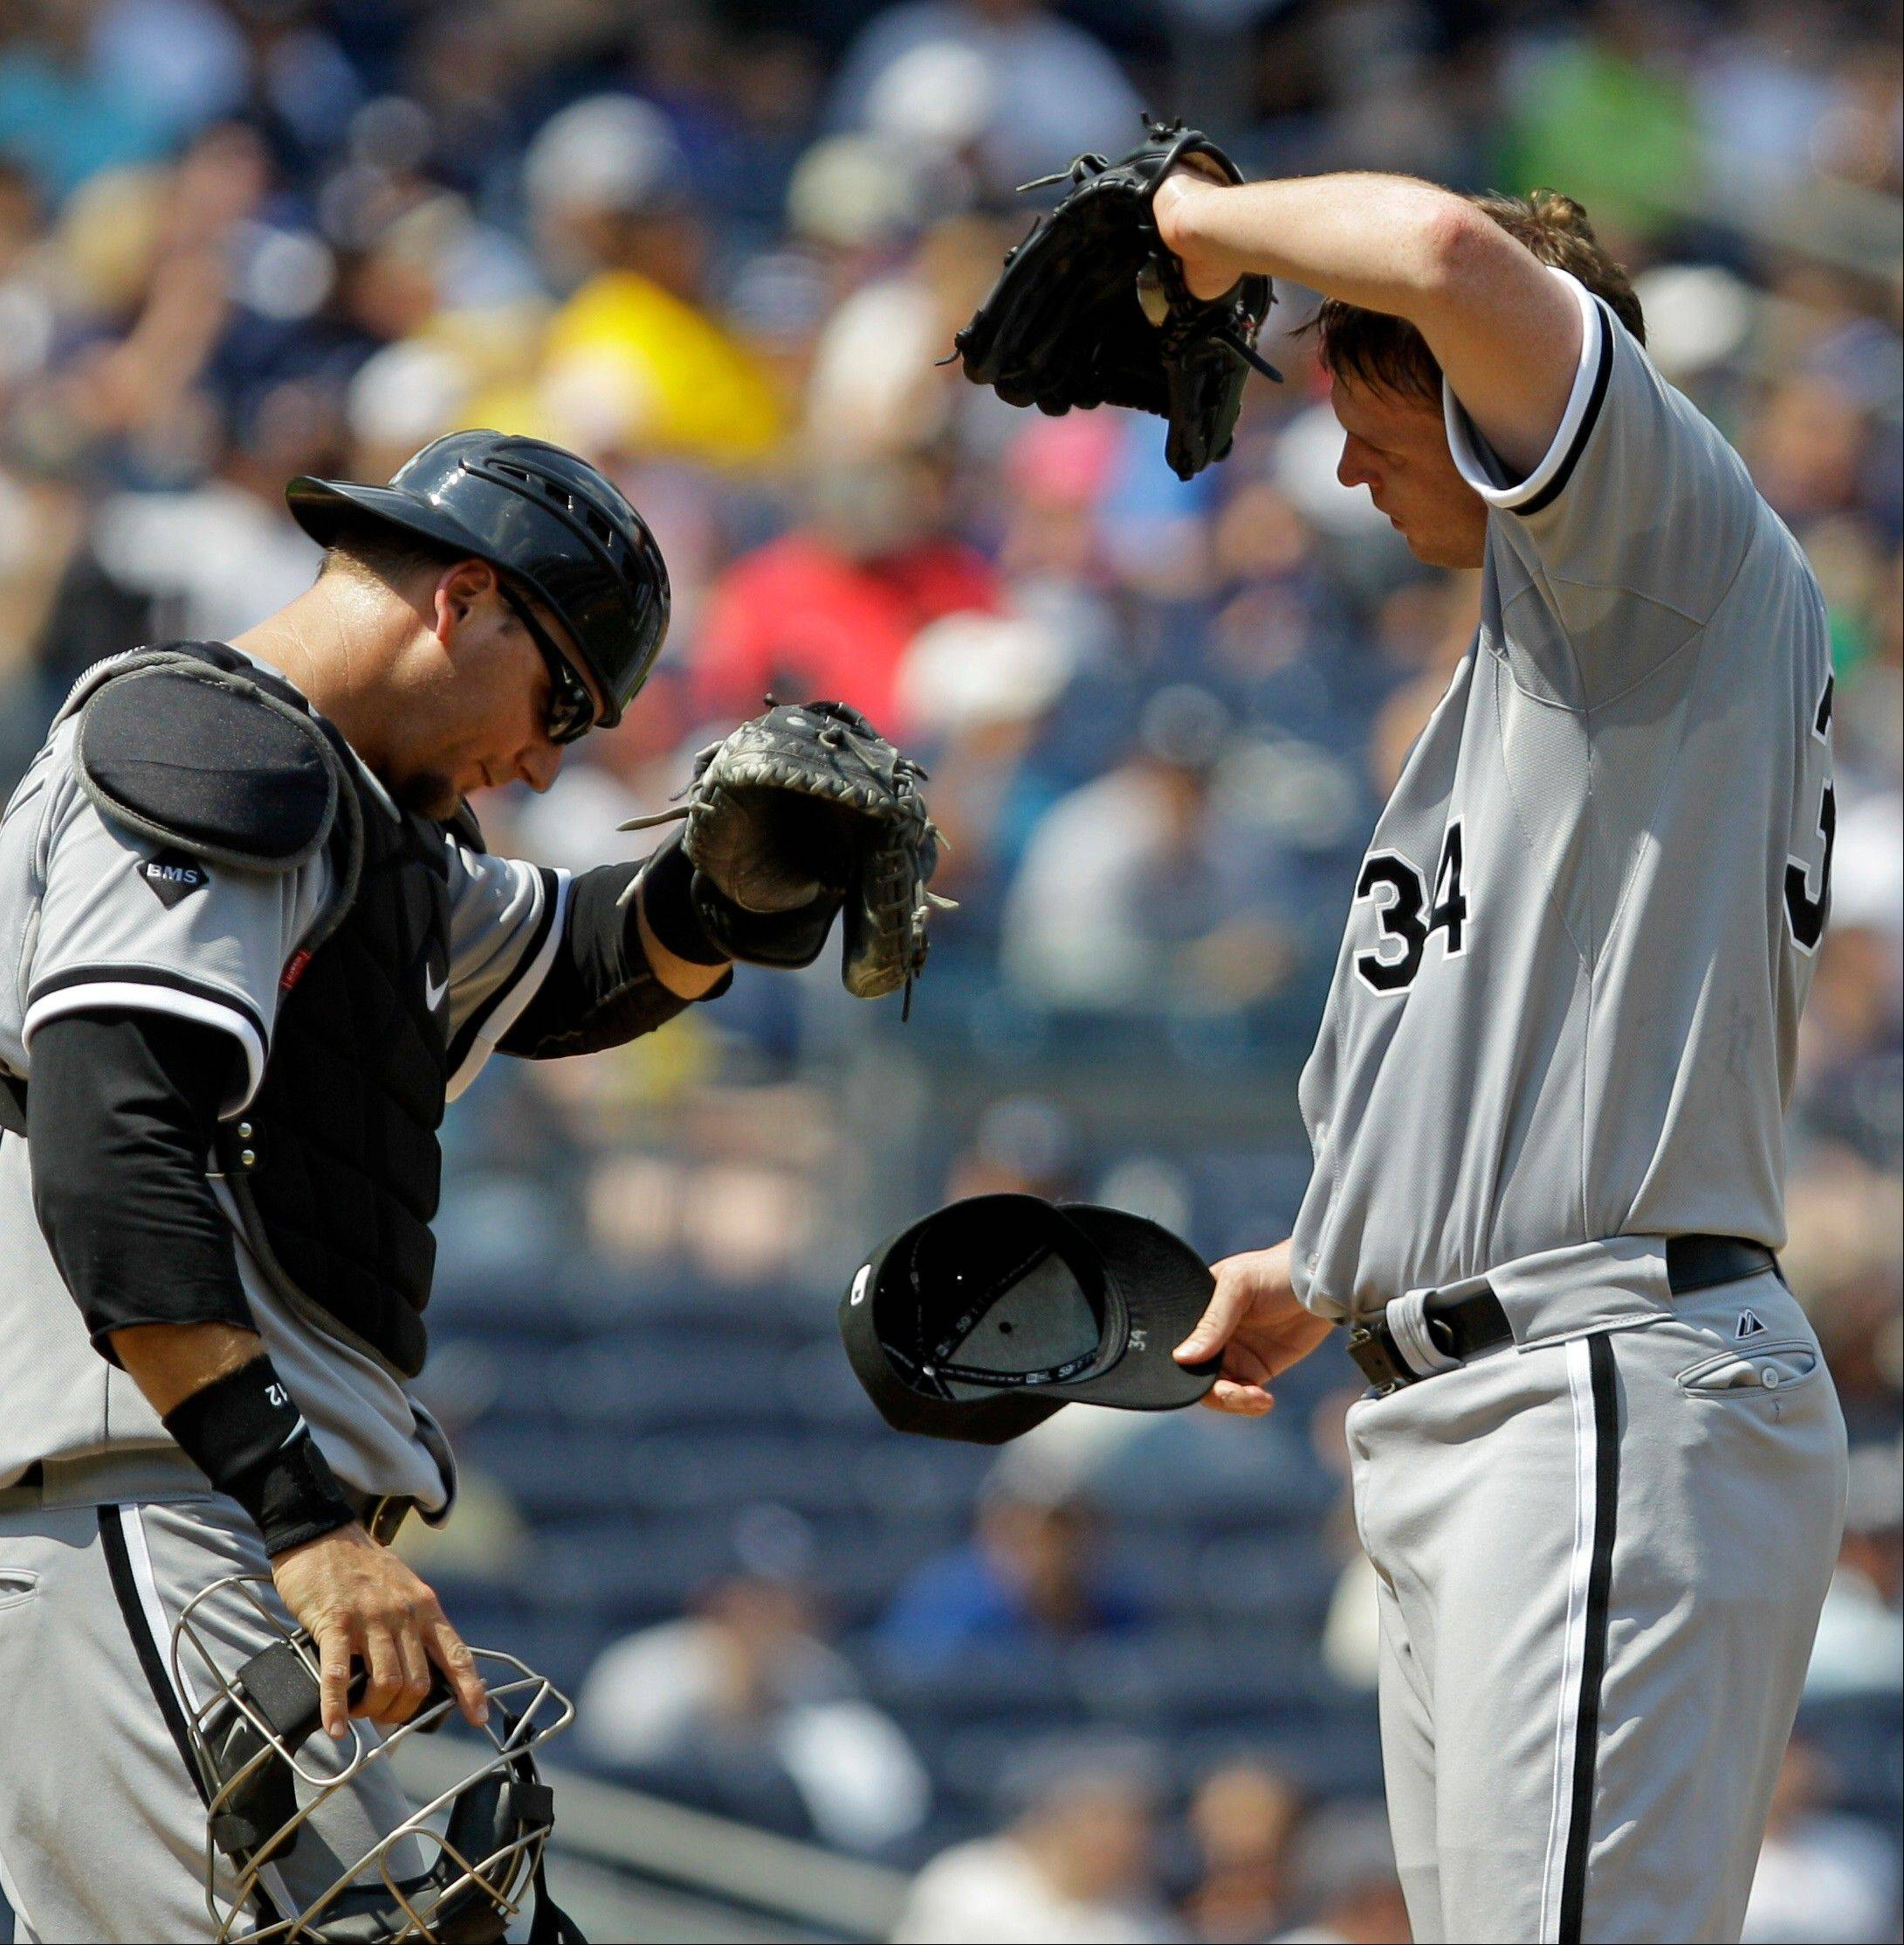 White Sox catcher A.J. Pierzynski, left, and starting pitcher Gavin Floyd wipe their brows amid the heat and humidity Sunday at Yankee Stadium.